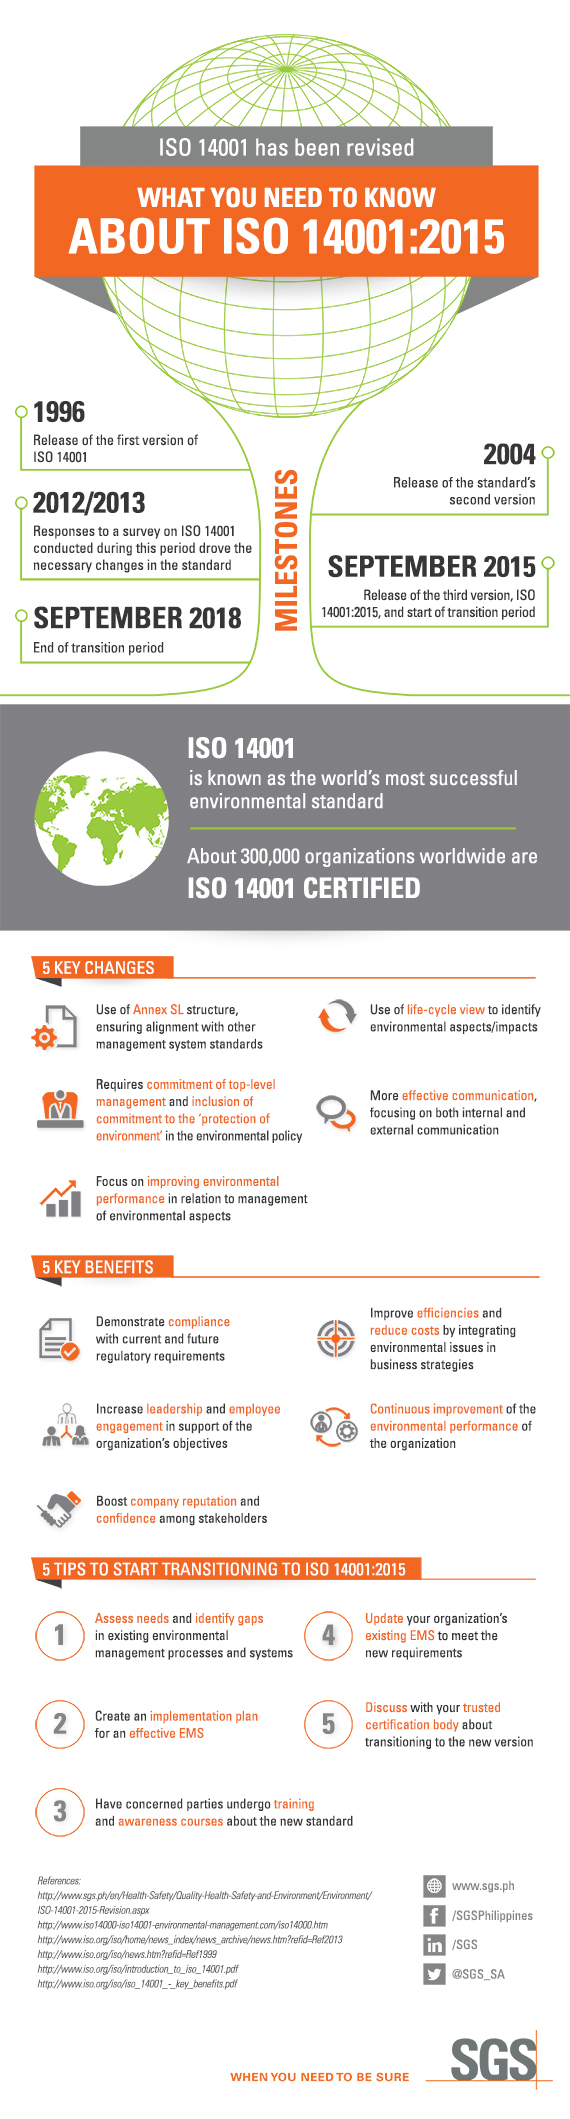 ISO 14001:2015 in the Philippines, ISO 14001 certification in the Philippines, ISO 14001:2015 Training, ISO 14001:2015 certification, ISO 14001:2015 infographic, environmental management system in the Philippines, EMS Philippines, benefits of ISO 14001, transition to ISO 14001:2015